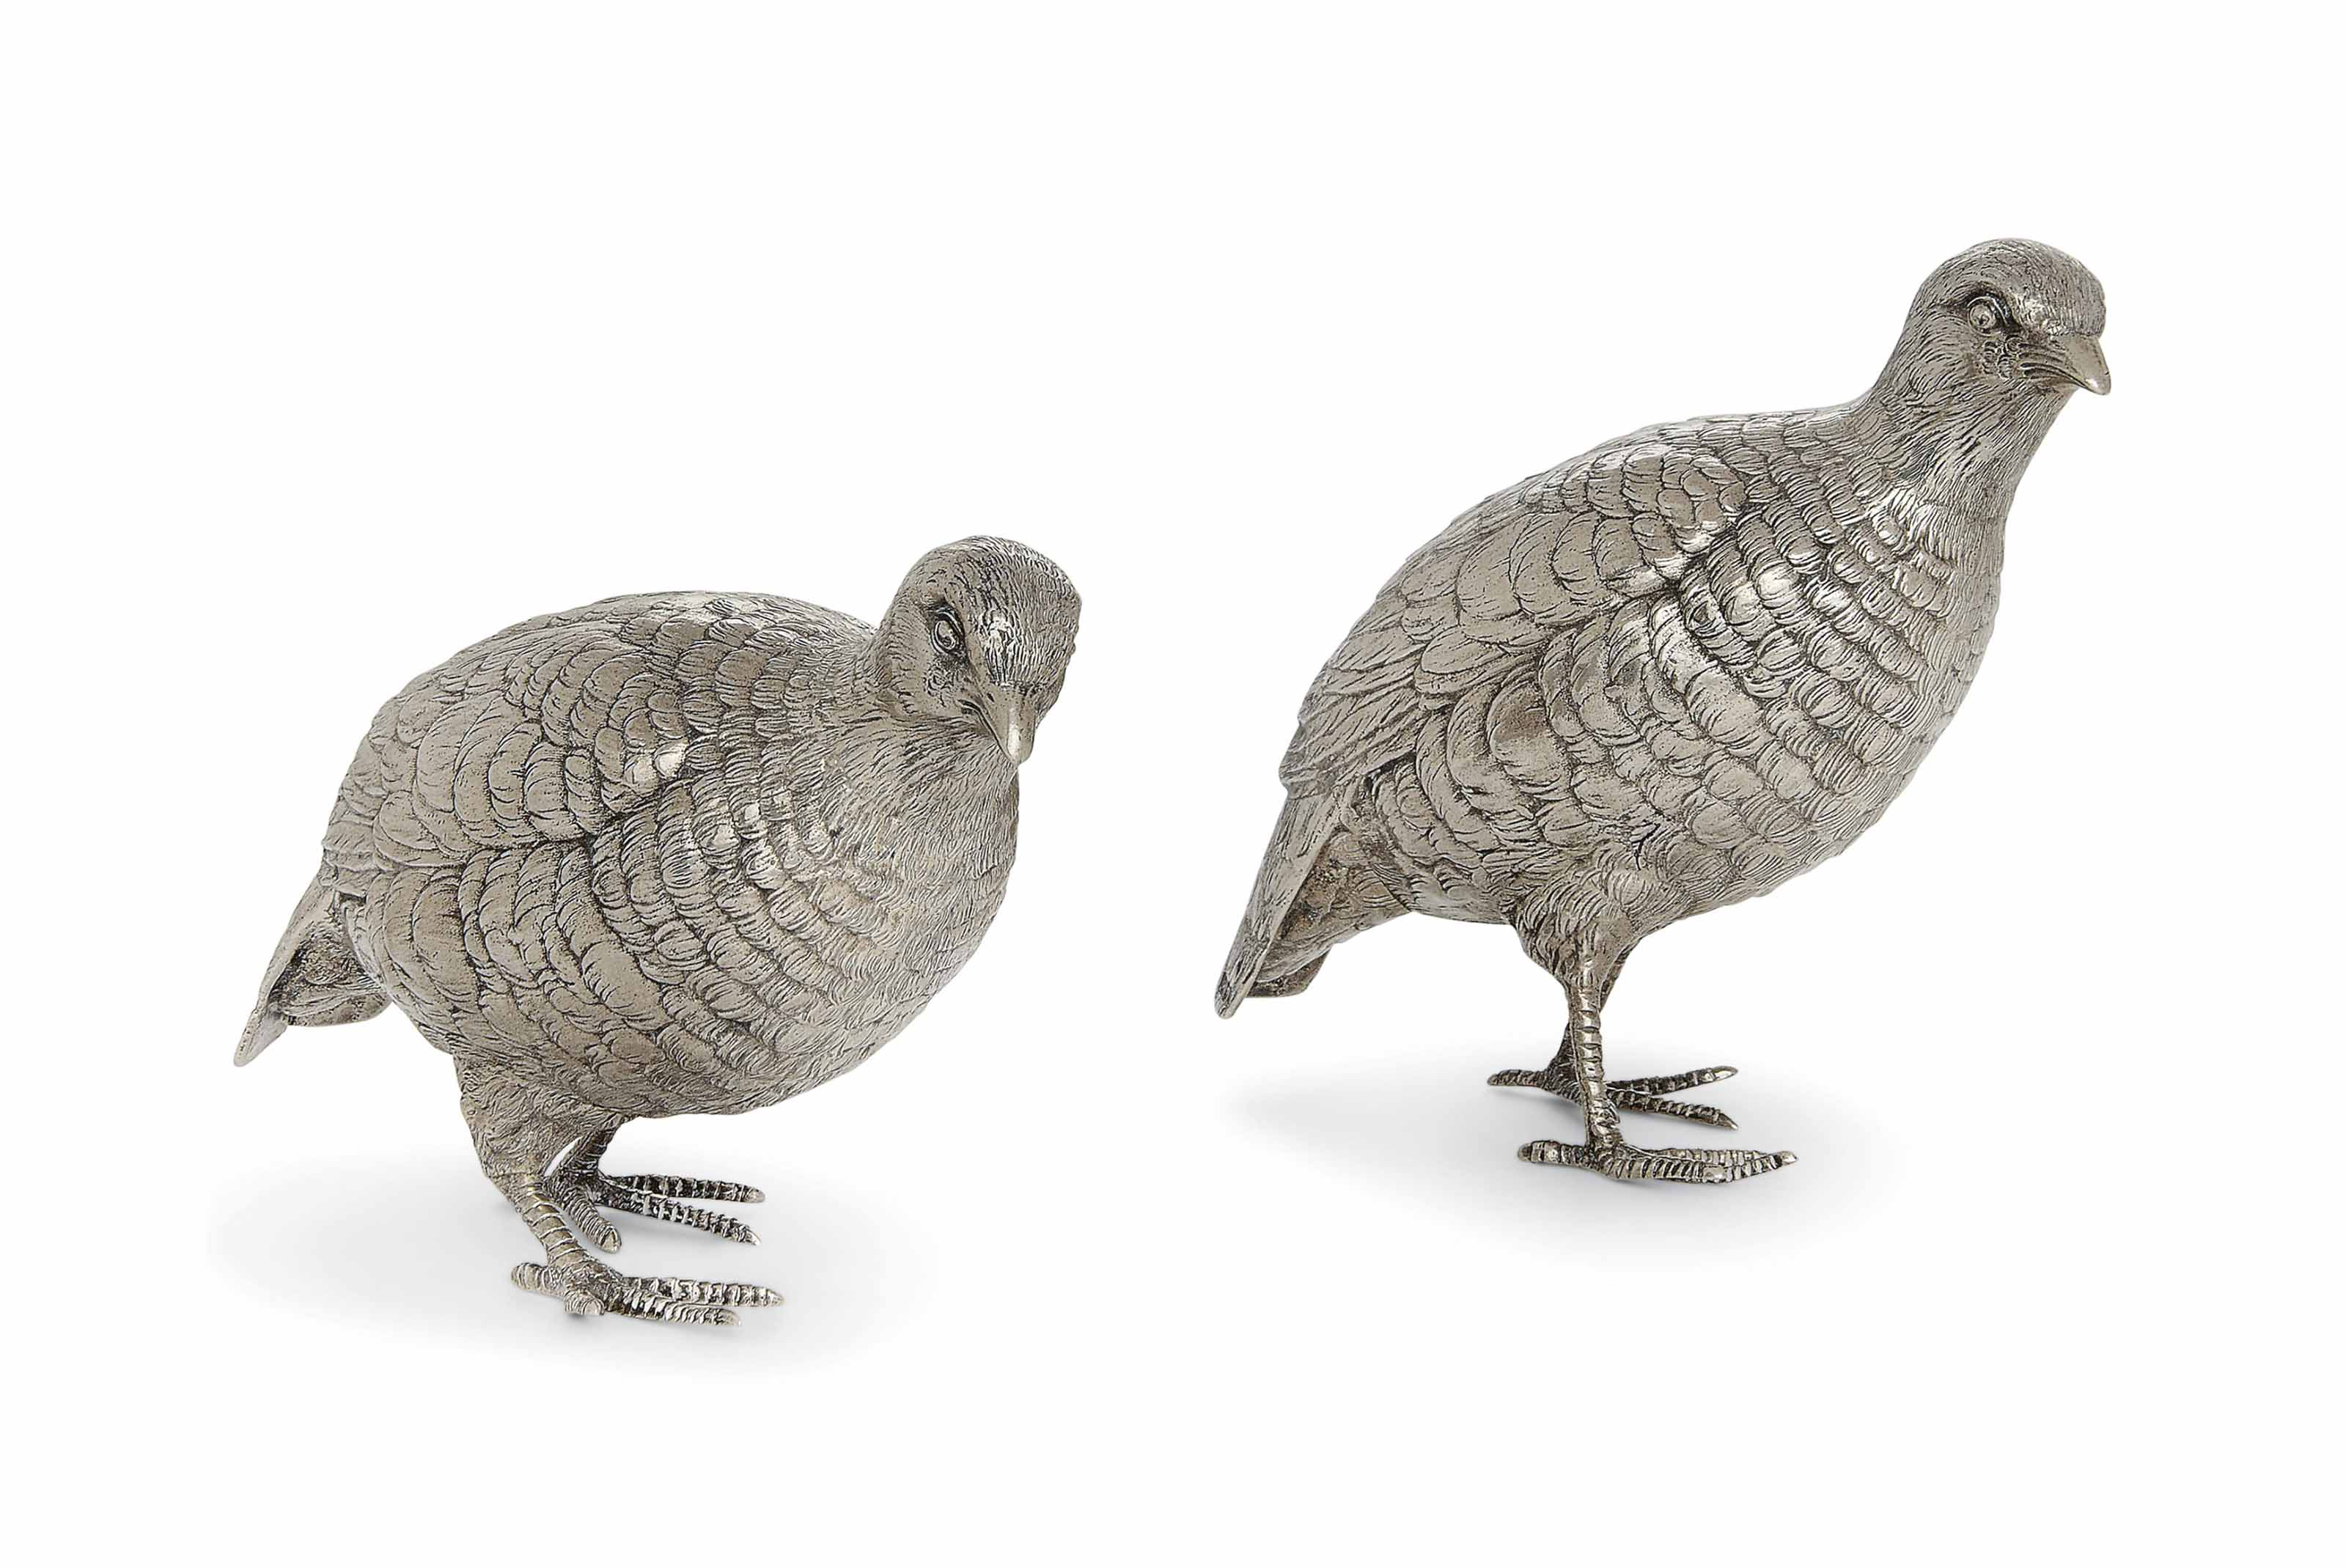 A PAIR OF MODERN SILVER CAST TABLE ORNAMENTS MODELLED AS GROUSE